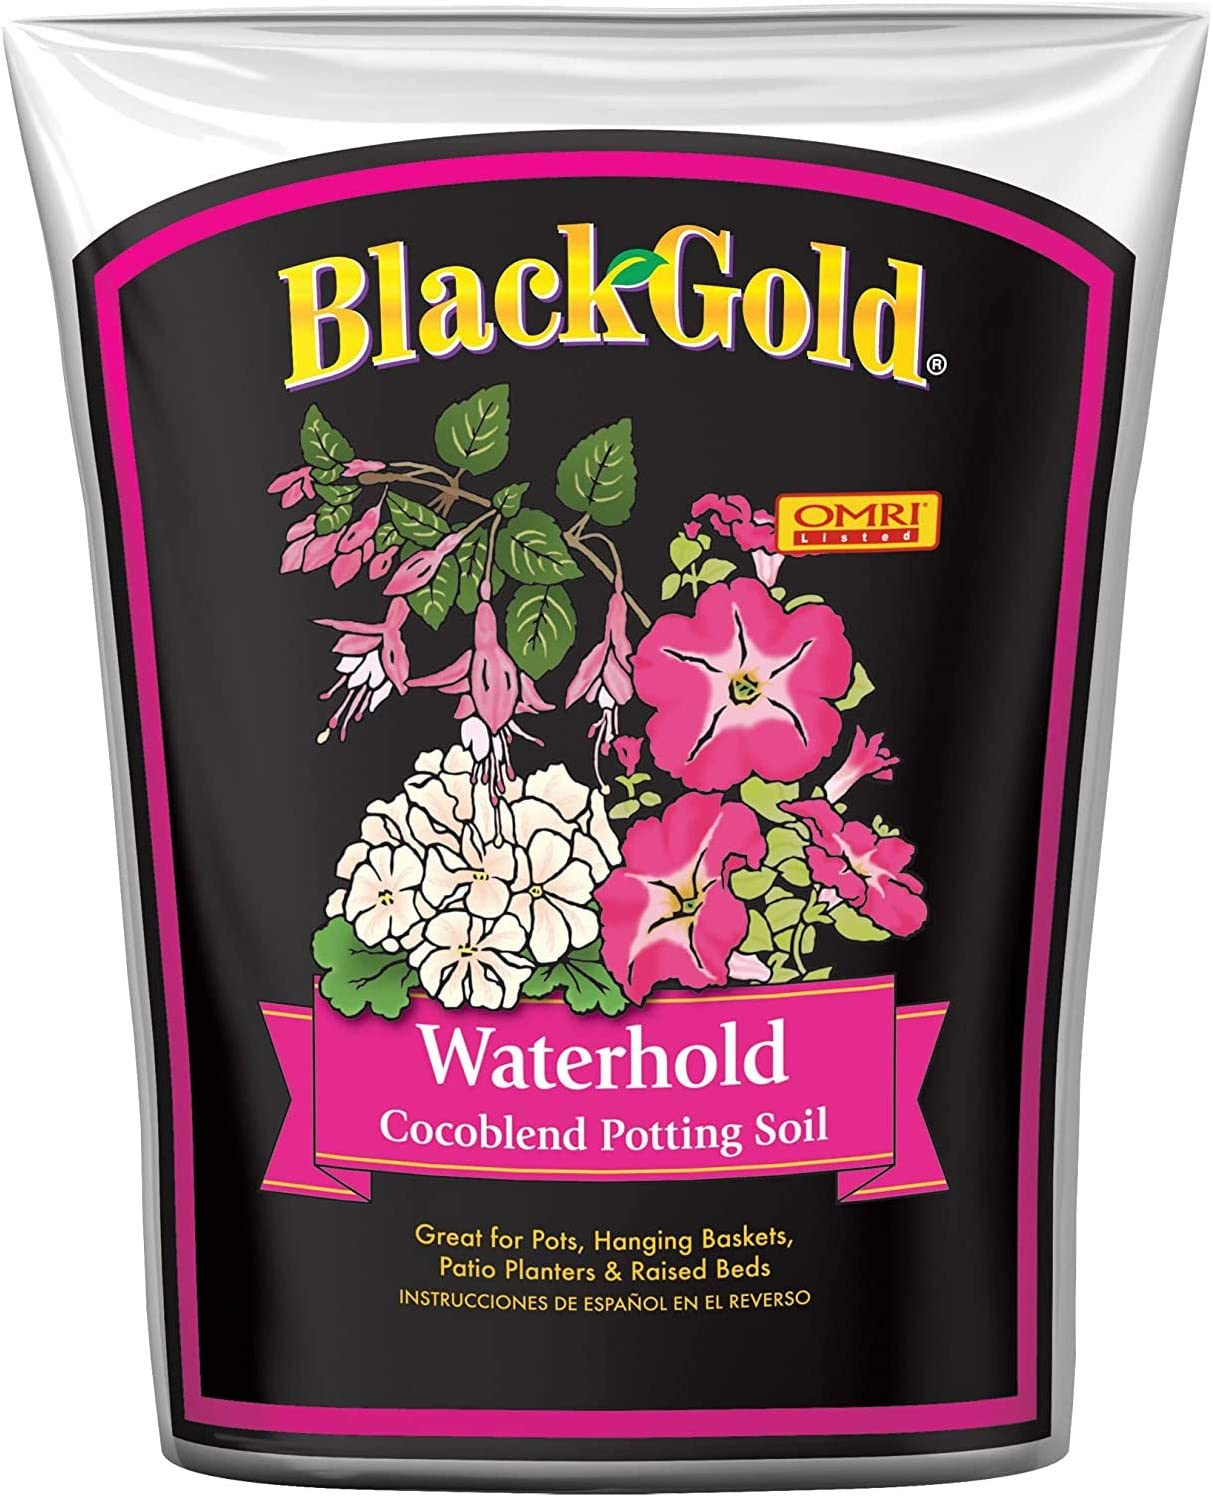 SunGro Black Some reservation Gold Natural Cocoblend Organic New product! New type Gardening Waterhold